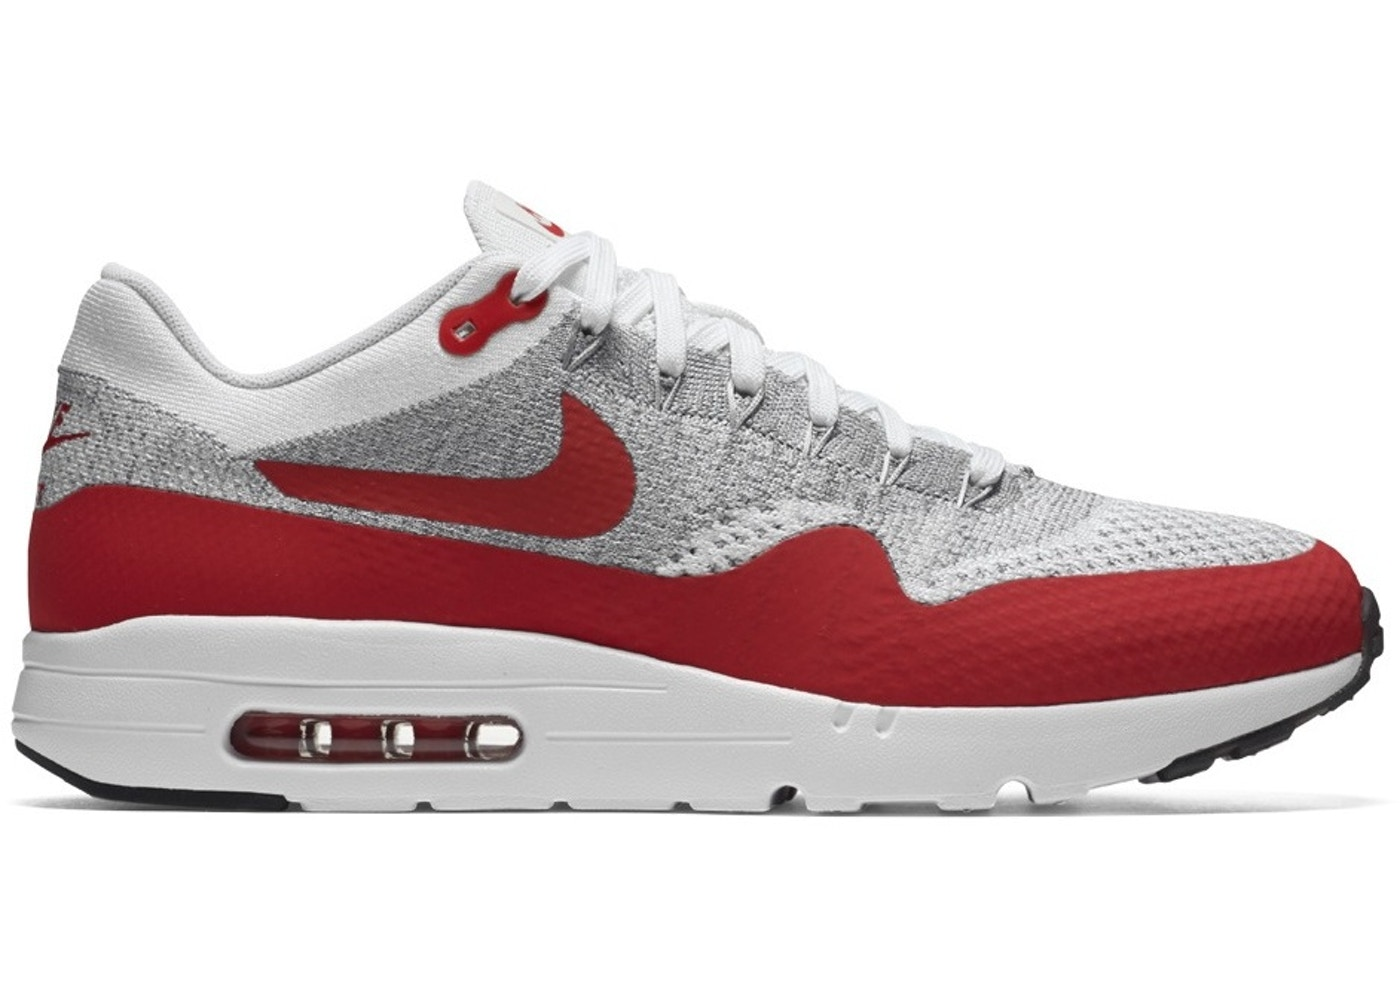 0bfa9fab32 Sell. or Ask. Size: 9.5. View All Bids. Air Max 1 Flyknit OG